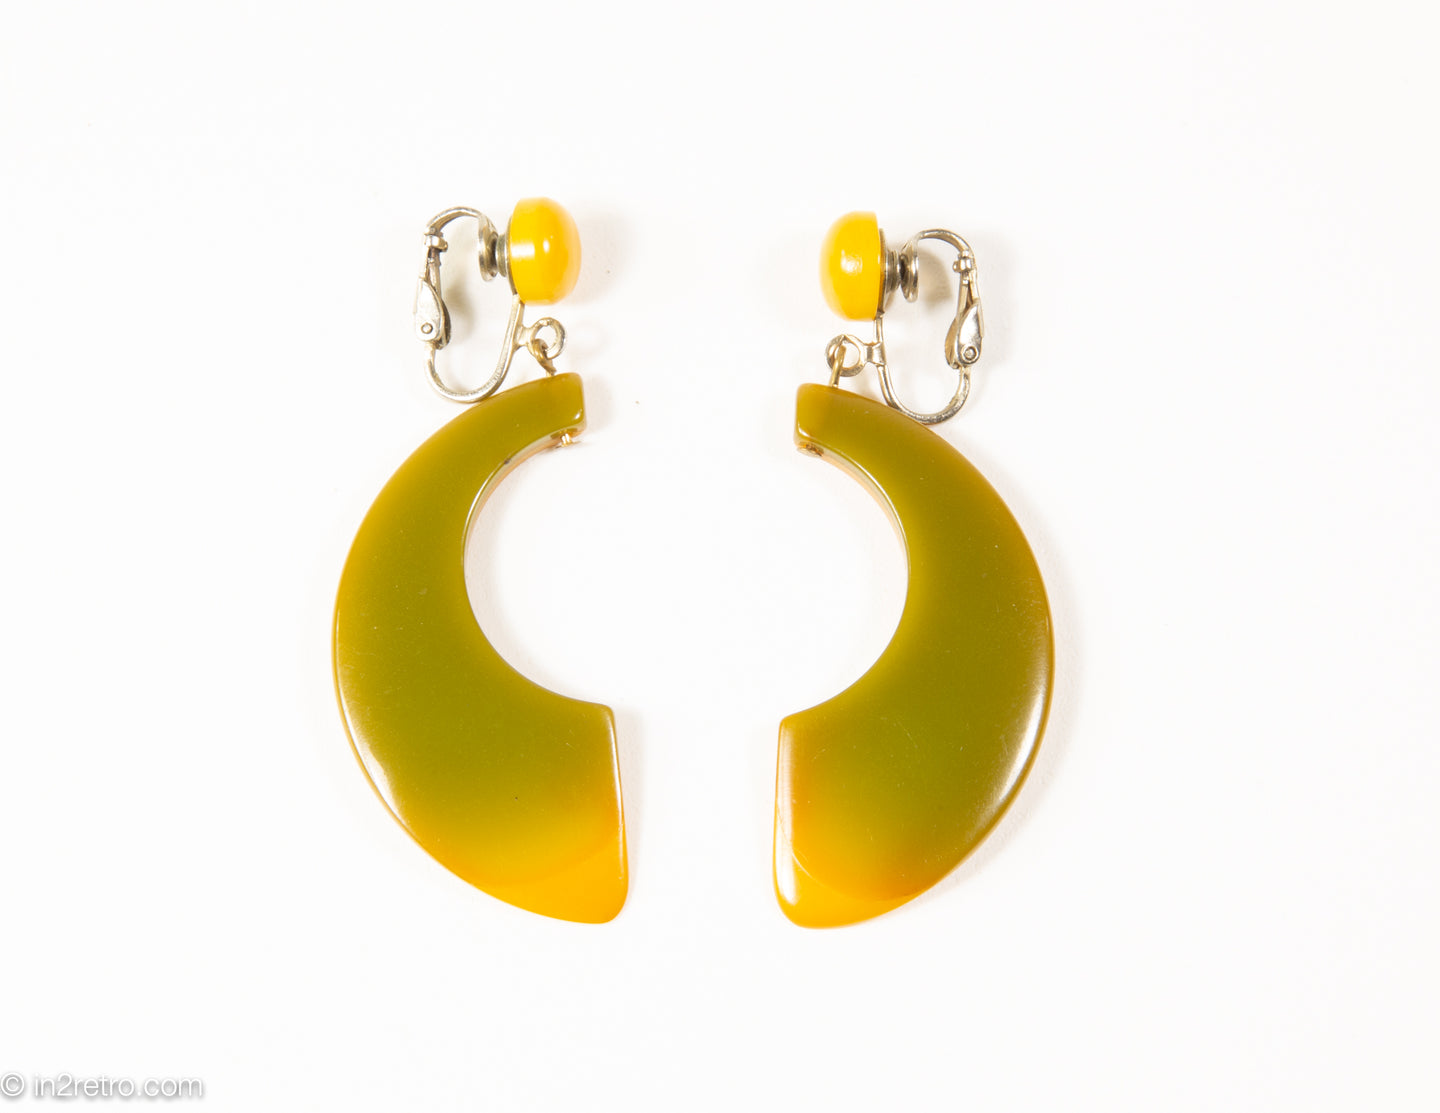 VINTAGE BAKELITE OLIVE AND BUTTERSCOTCH HALF-MOON/CRESCENT DANGLE CLIP EARRINGS/ 1960s-1970s